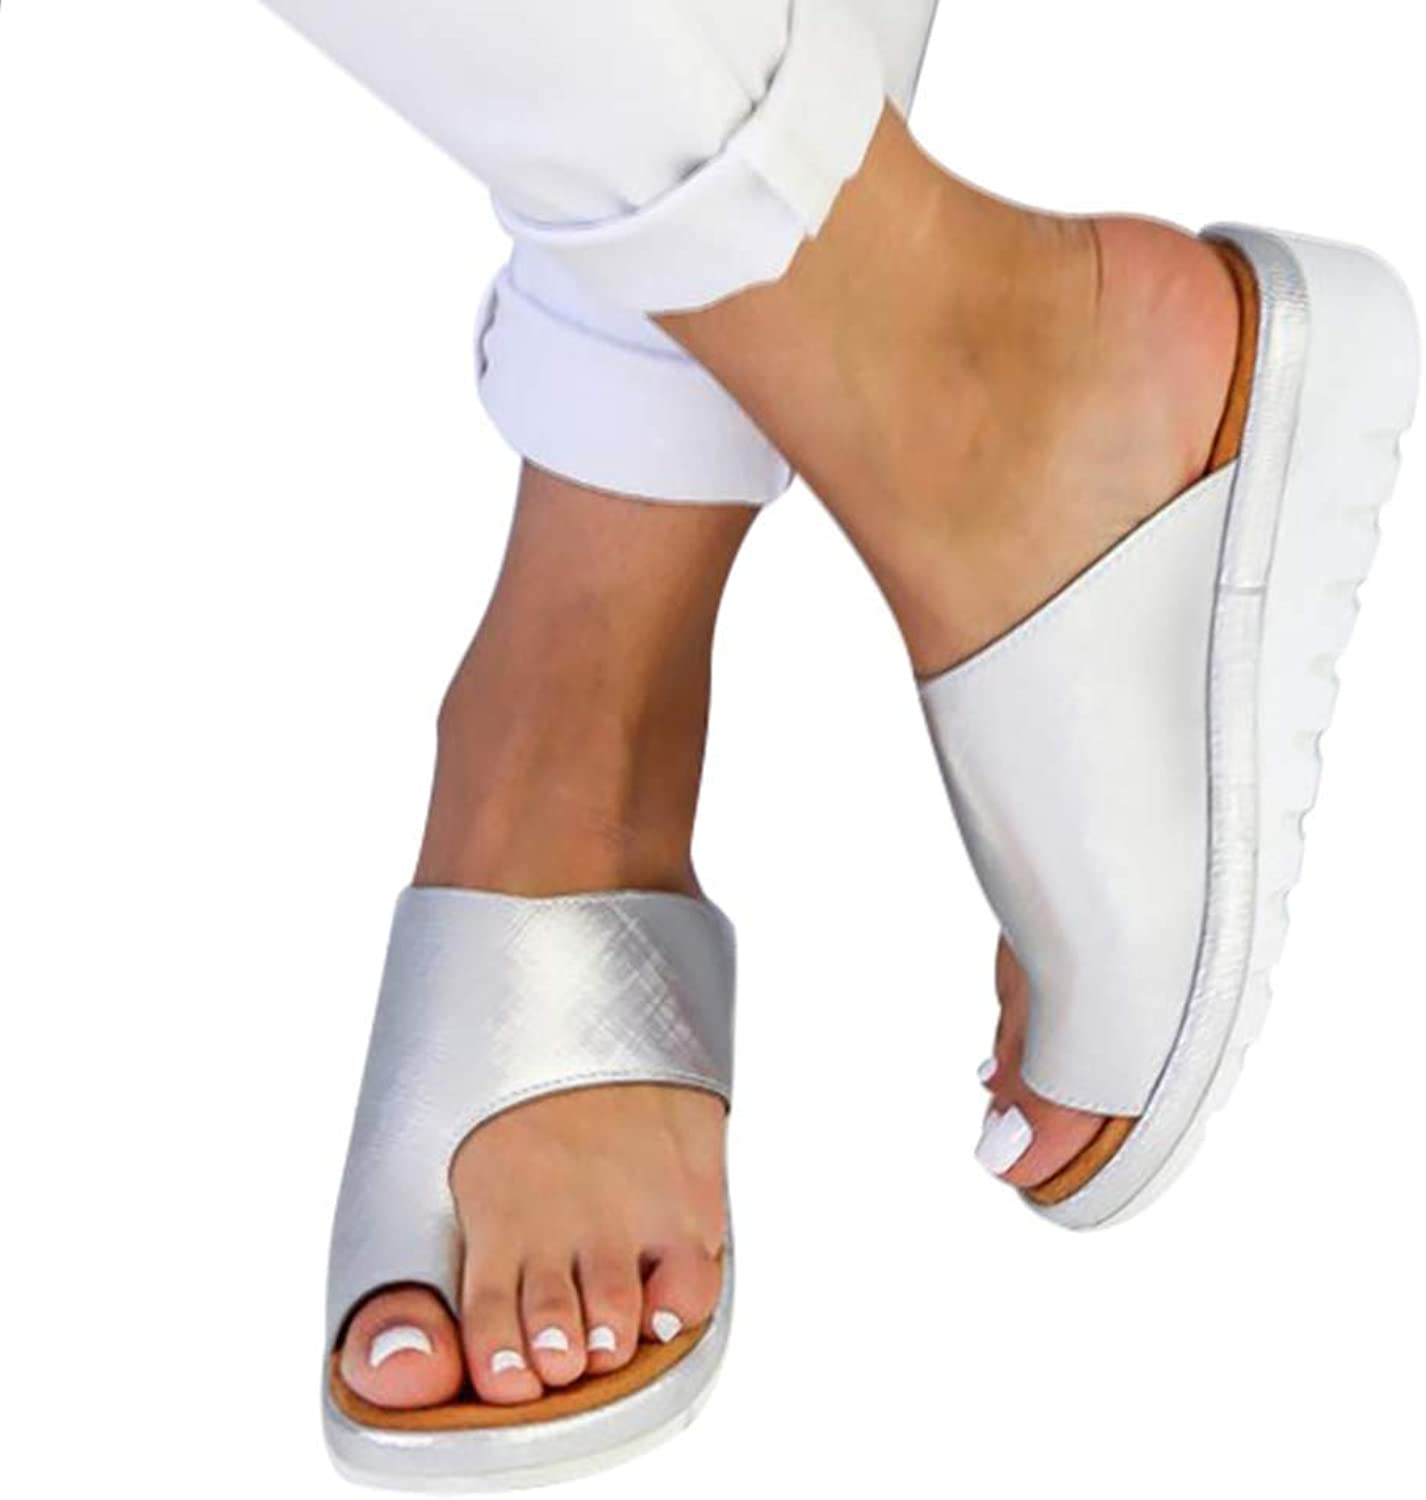 Flip Flops for Womens Comfy Platform shoes, Clip Toe Slip-On Wedge Sandals, Non-Slip Ladies Sandal, PU Leather Summer Beach shoes, Low-Heeled Wedges for Women Plus Size,Sliver,38